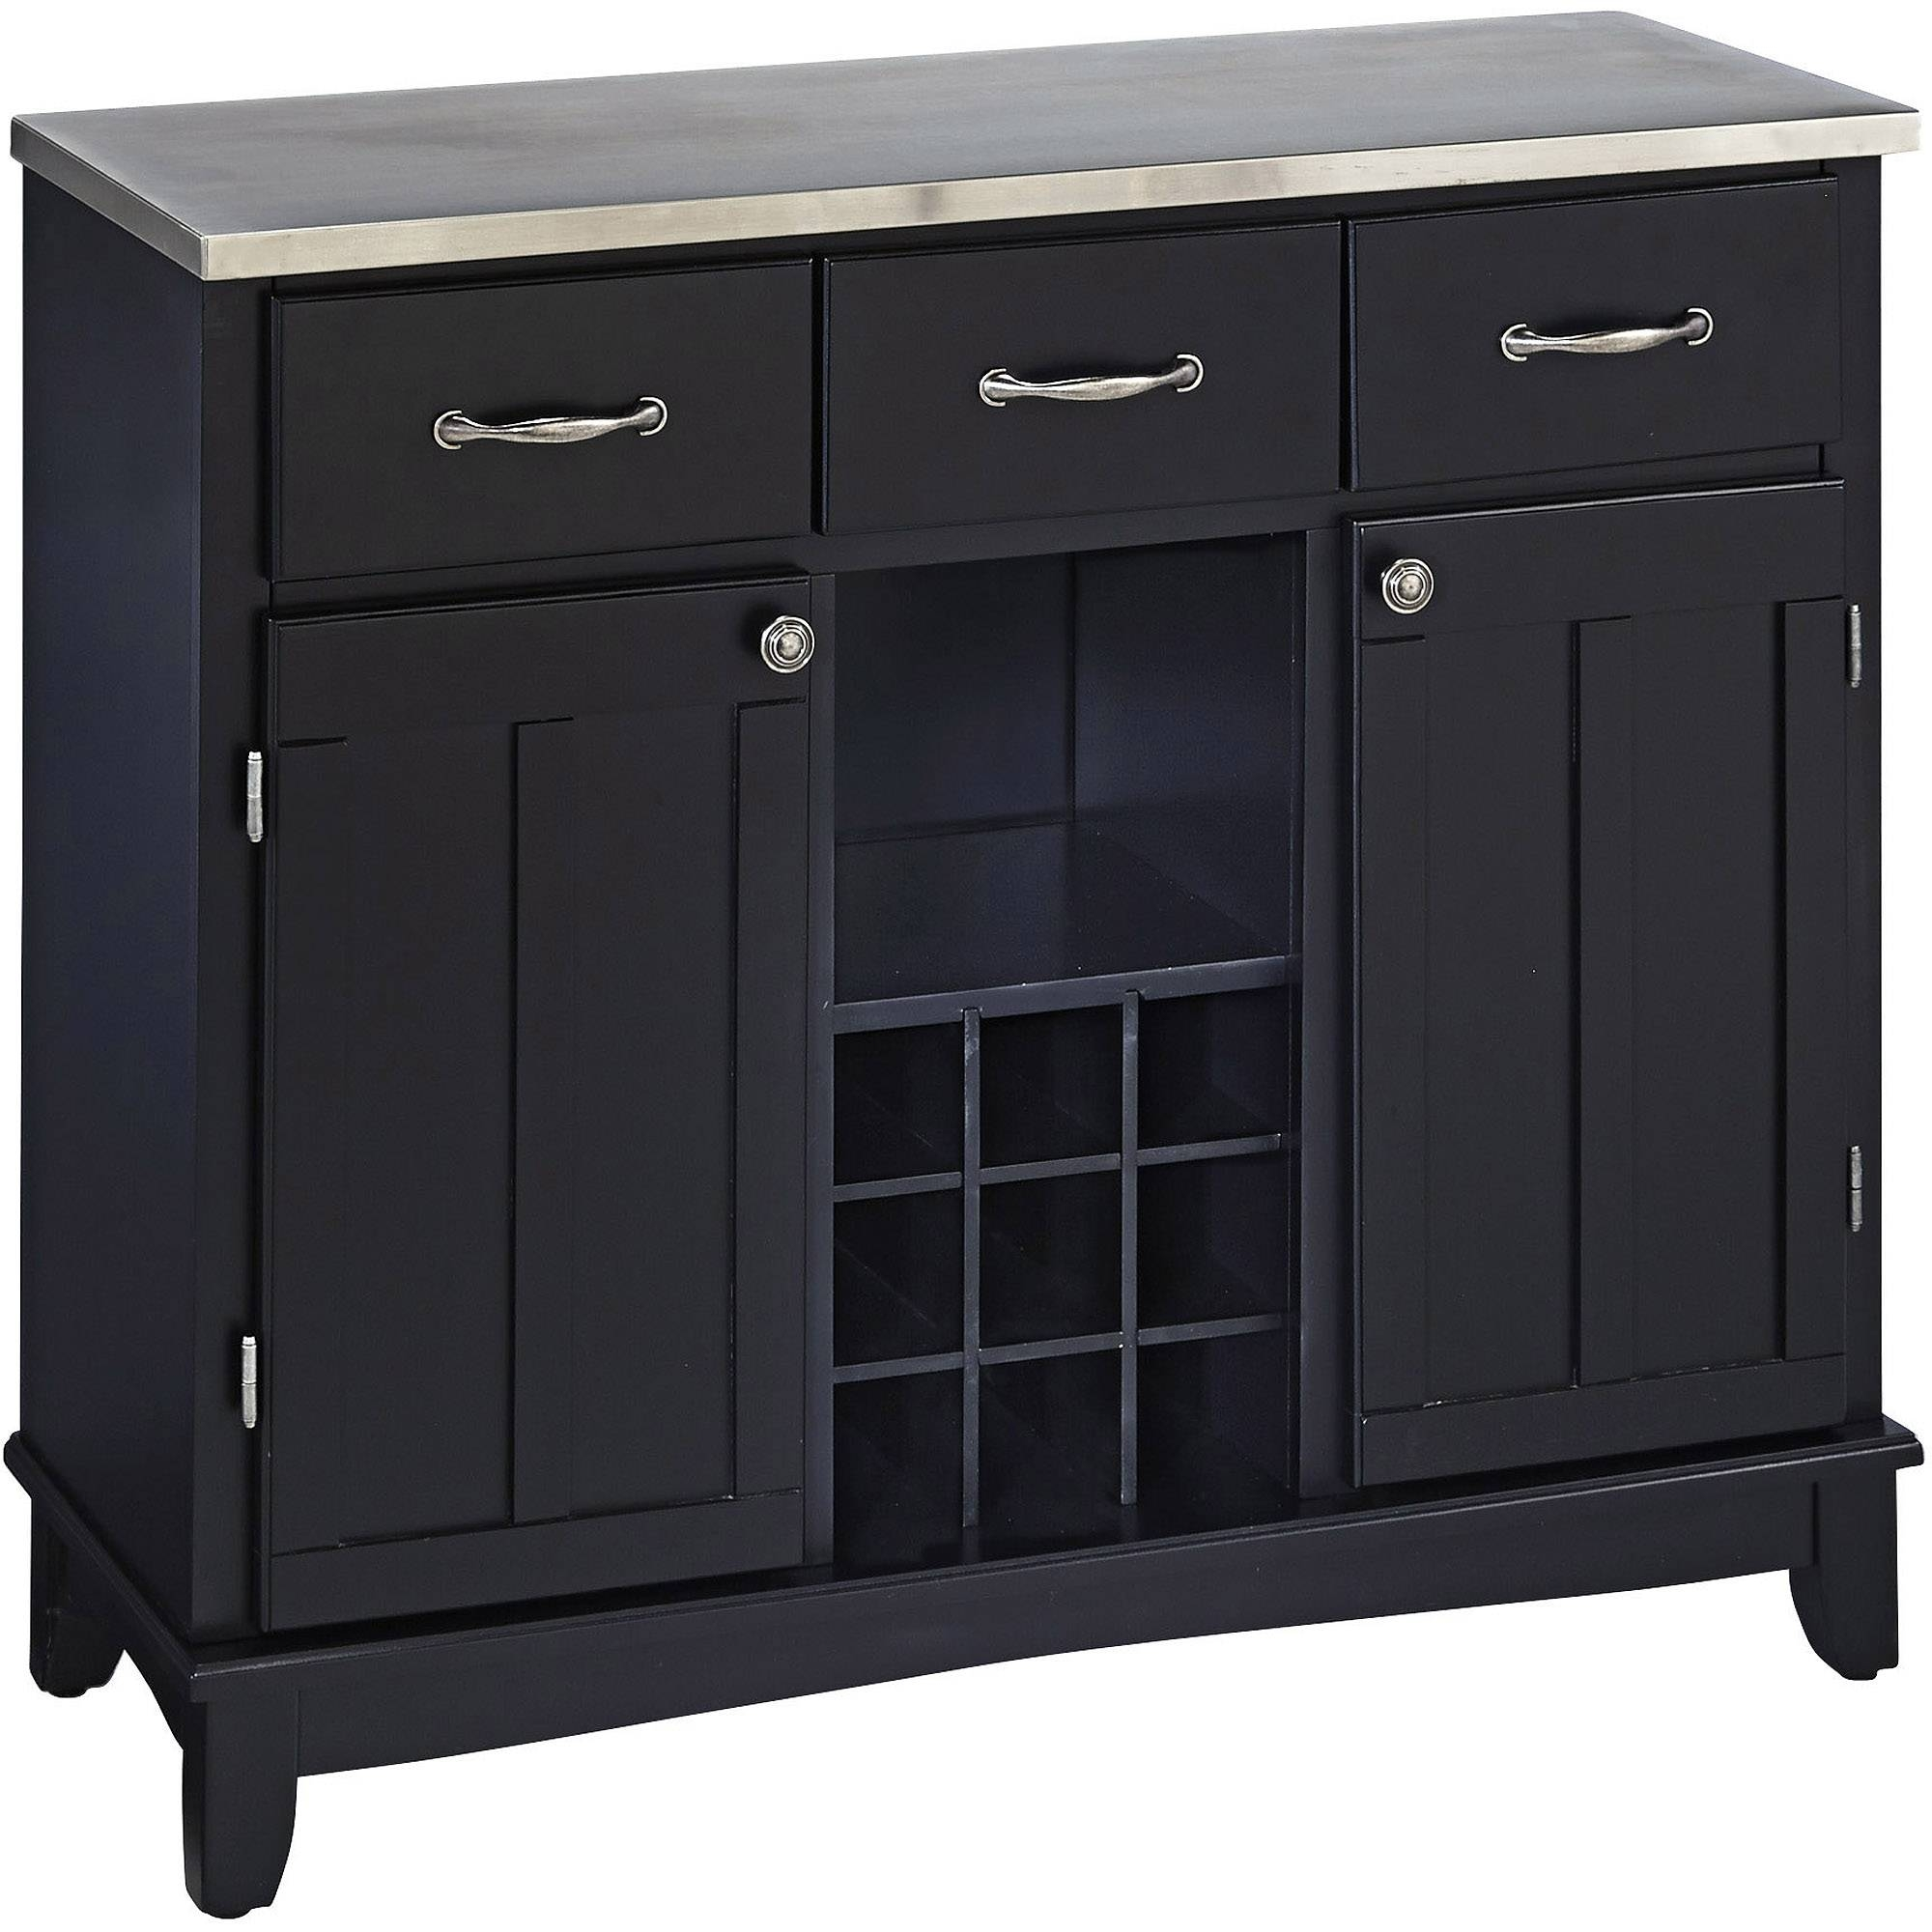 China Cabinet & Buffet Furniture : Kitchen & Dining Furniture in Small Black Sideboards (Image 6 of 30)